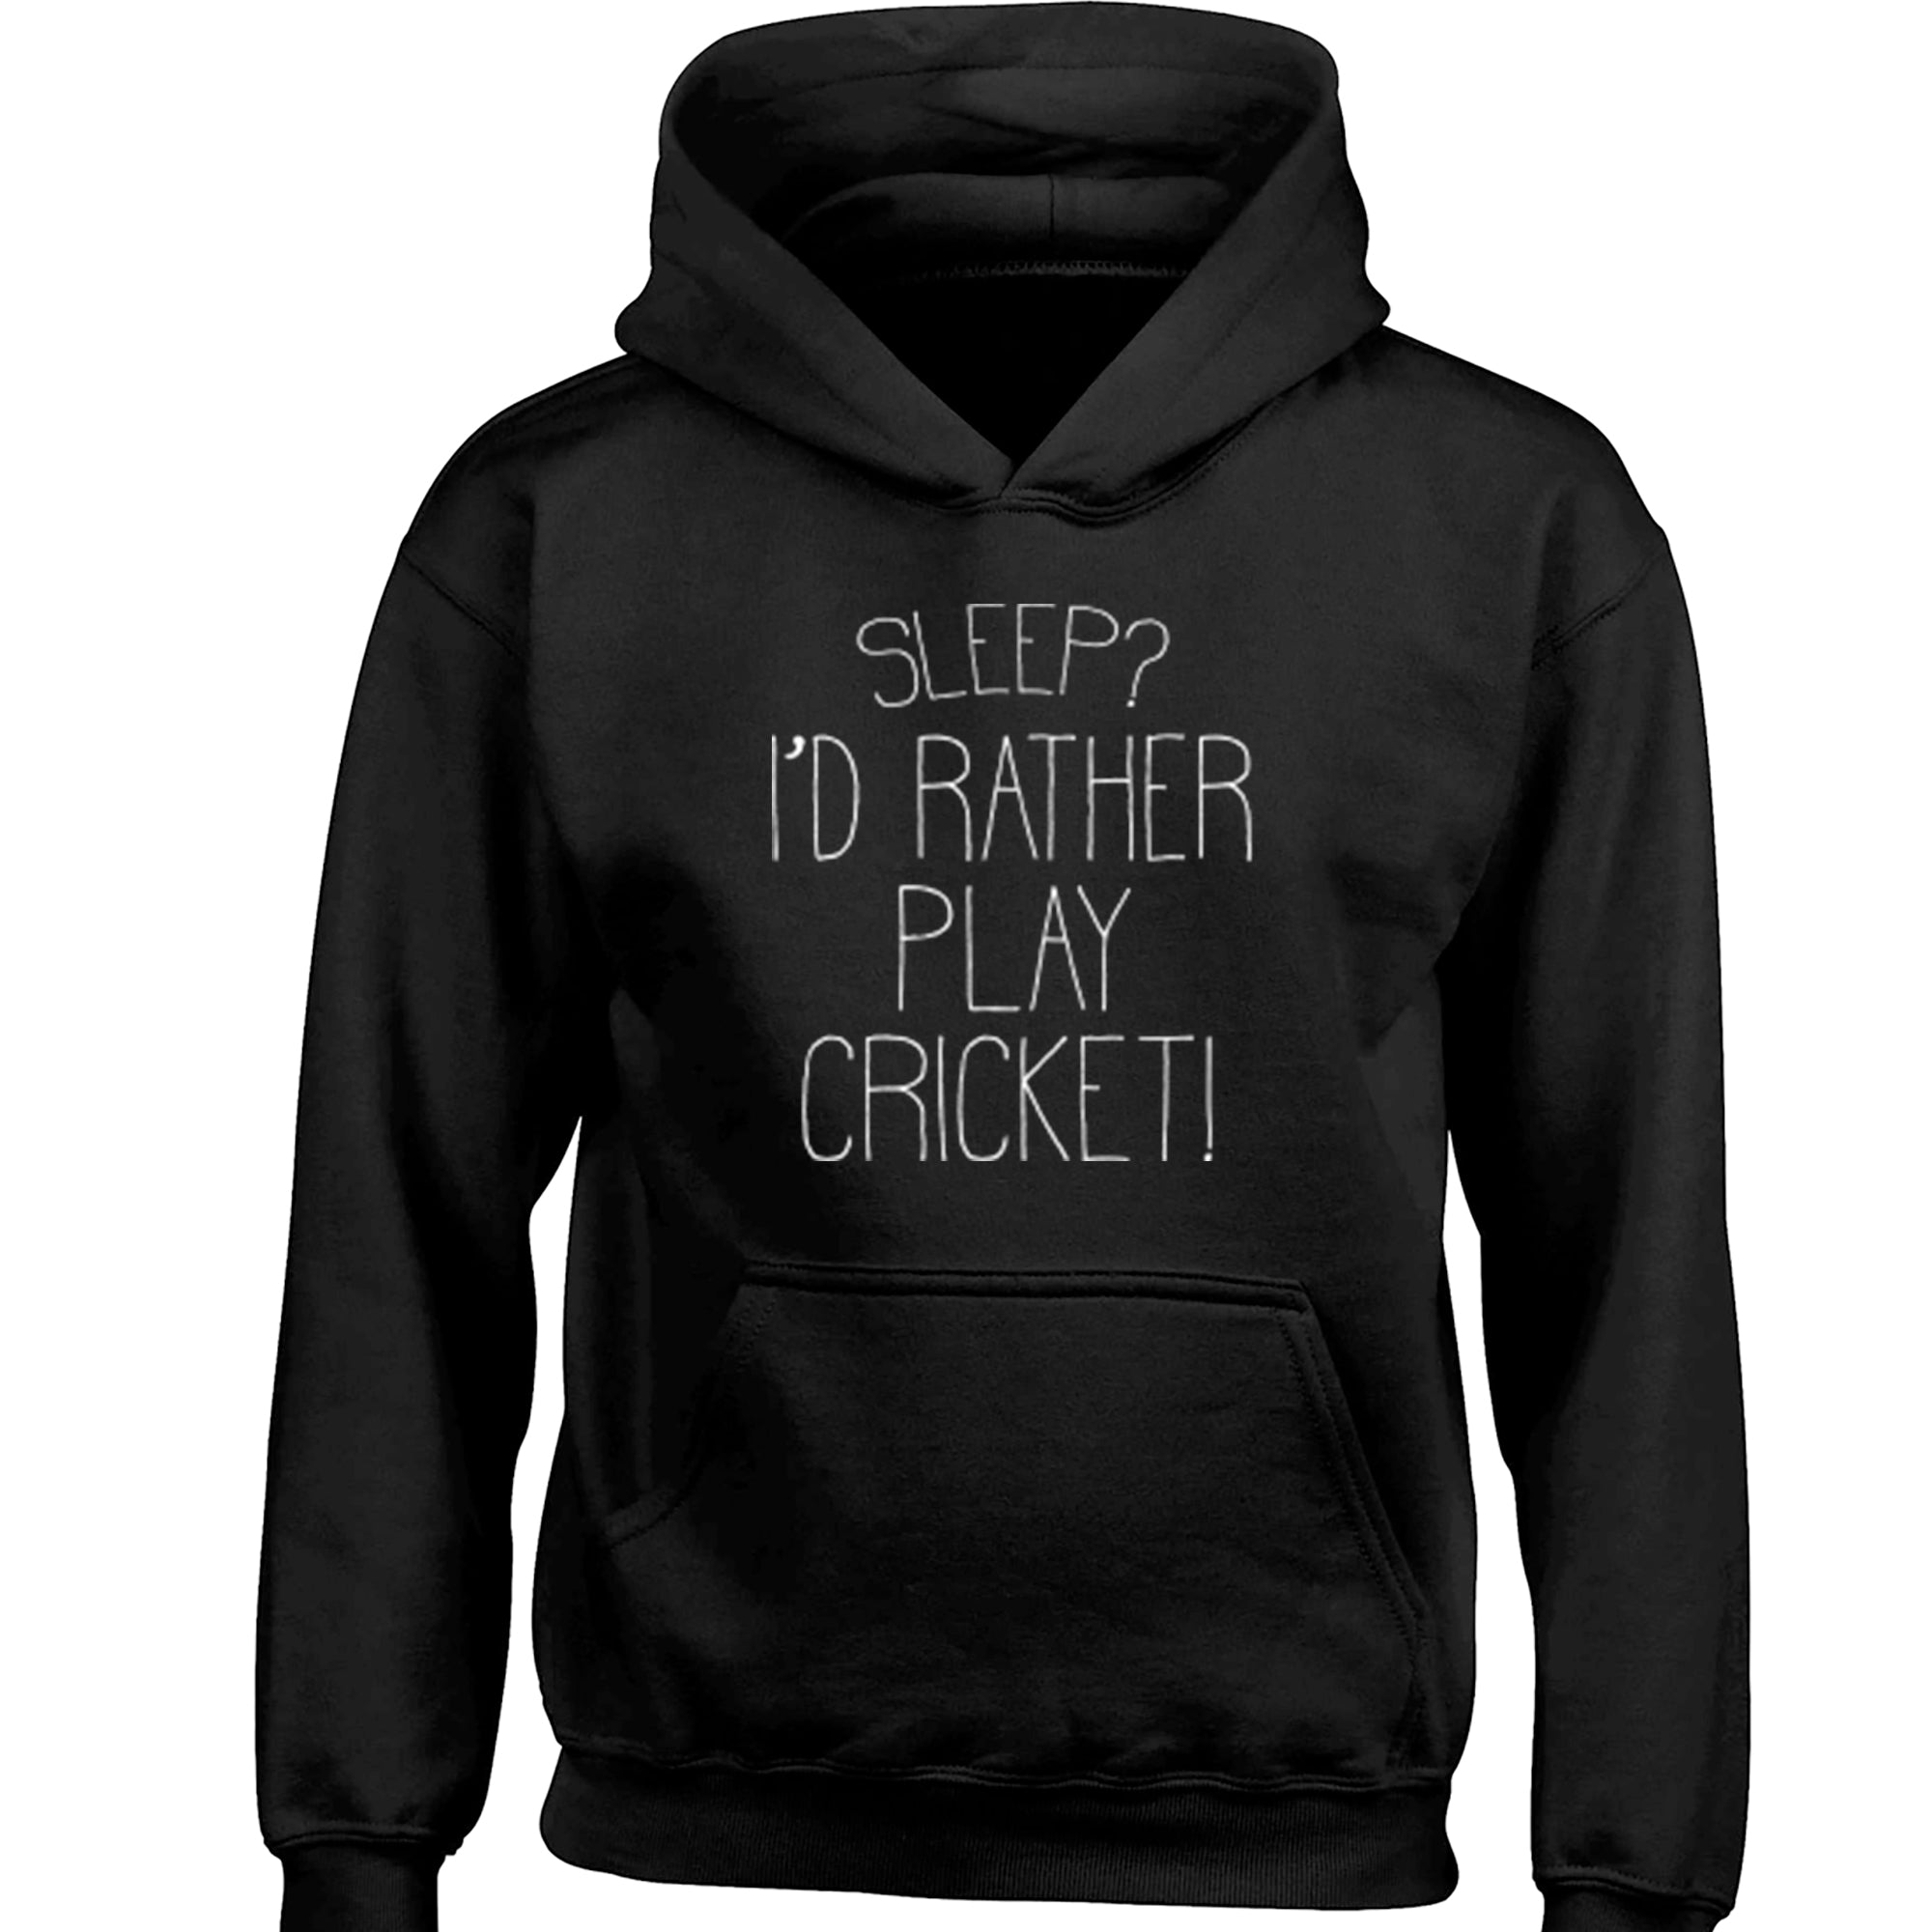 Sleep? I'd Rather Play Cricket Childrens Ages 3/4-12/14 Unisex Hoodie S0473 - Illustrated Identity Ltd.